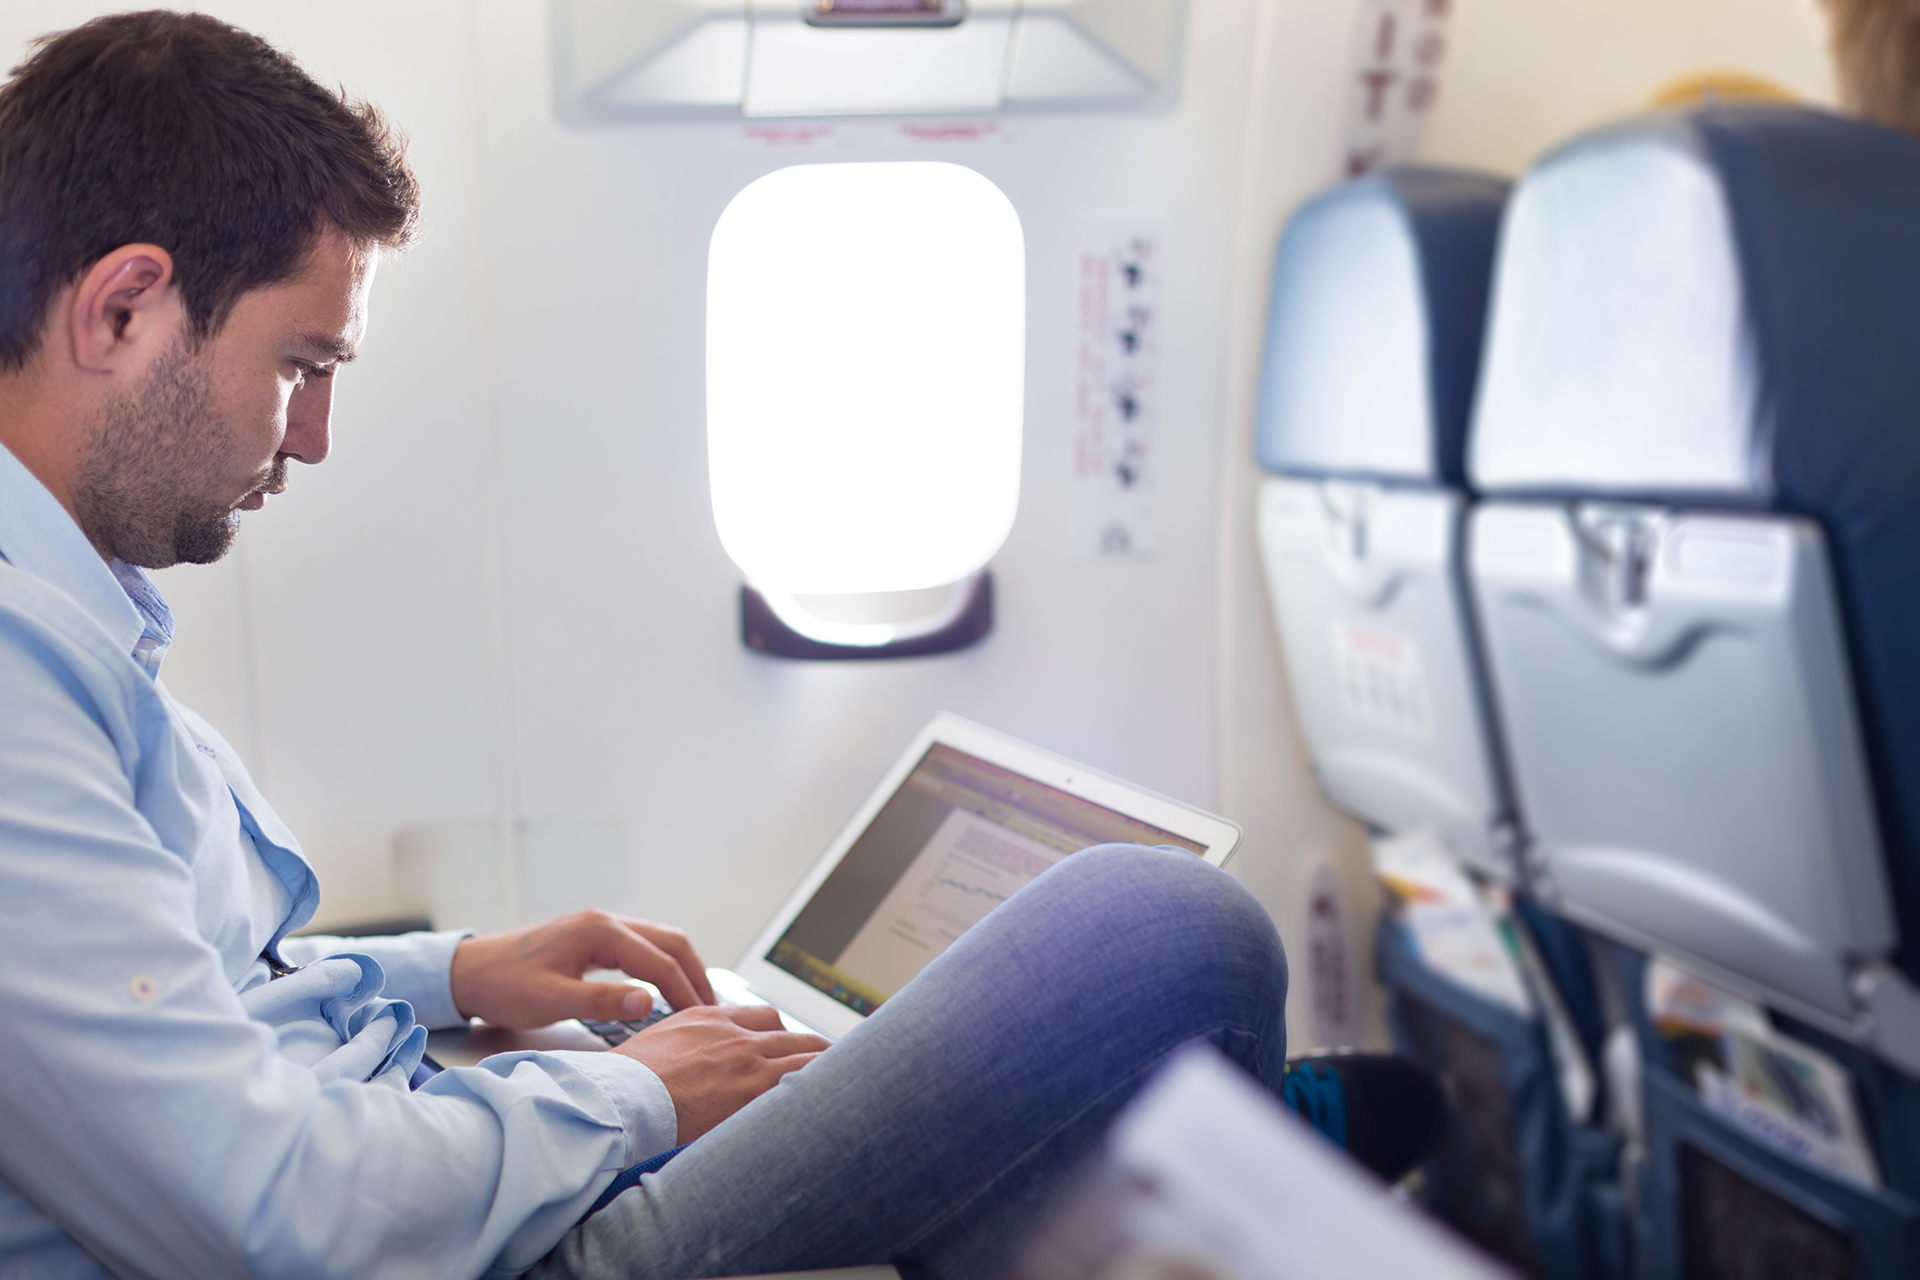 Travelers Want More Connectivity While Flying